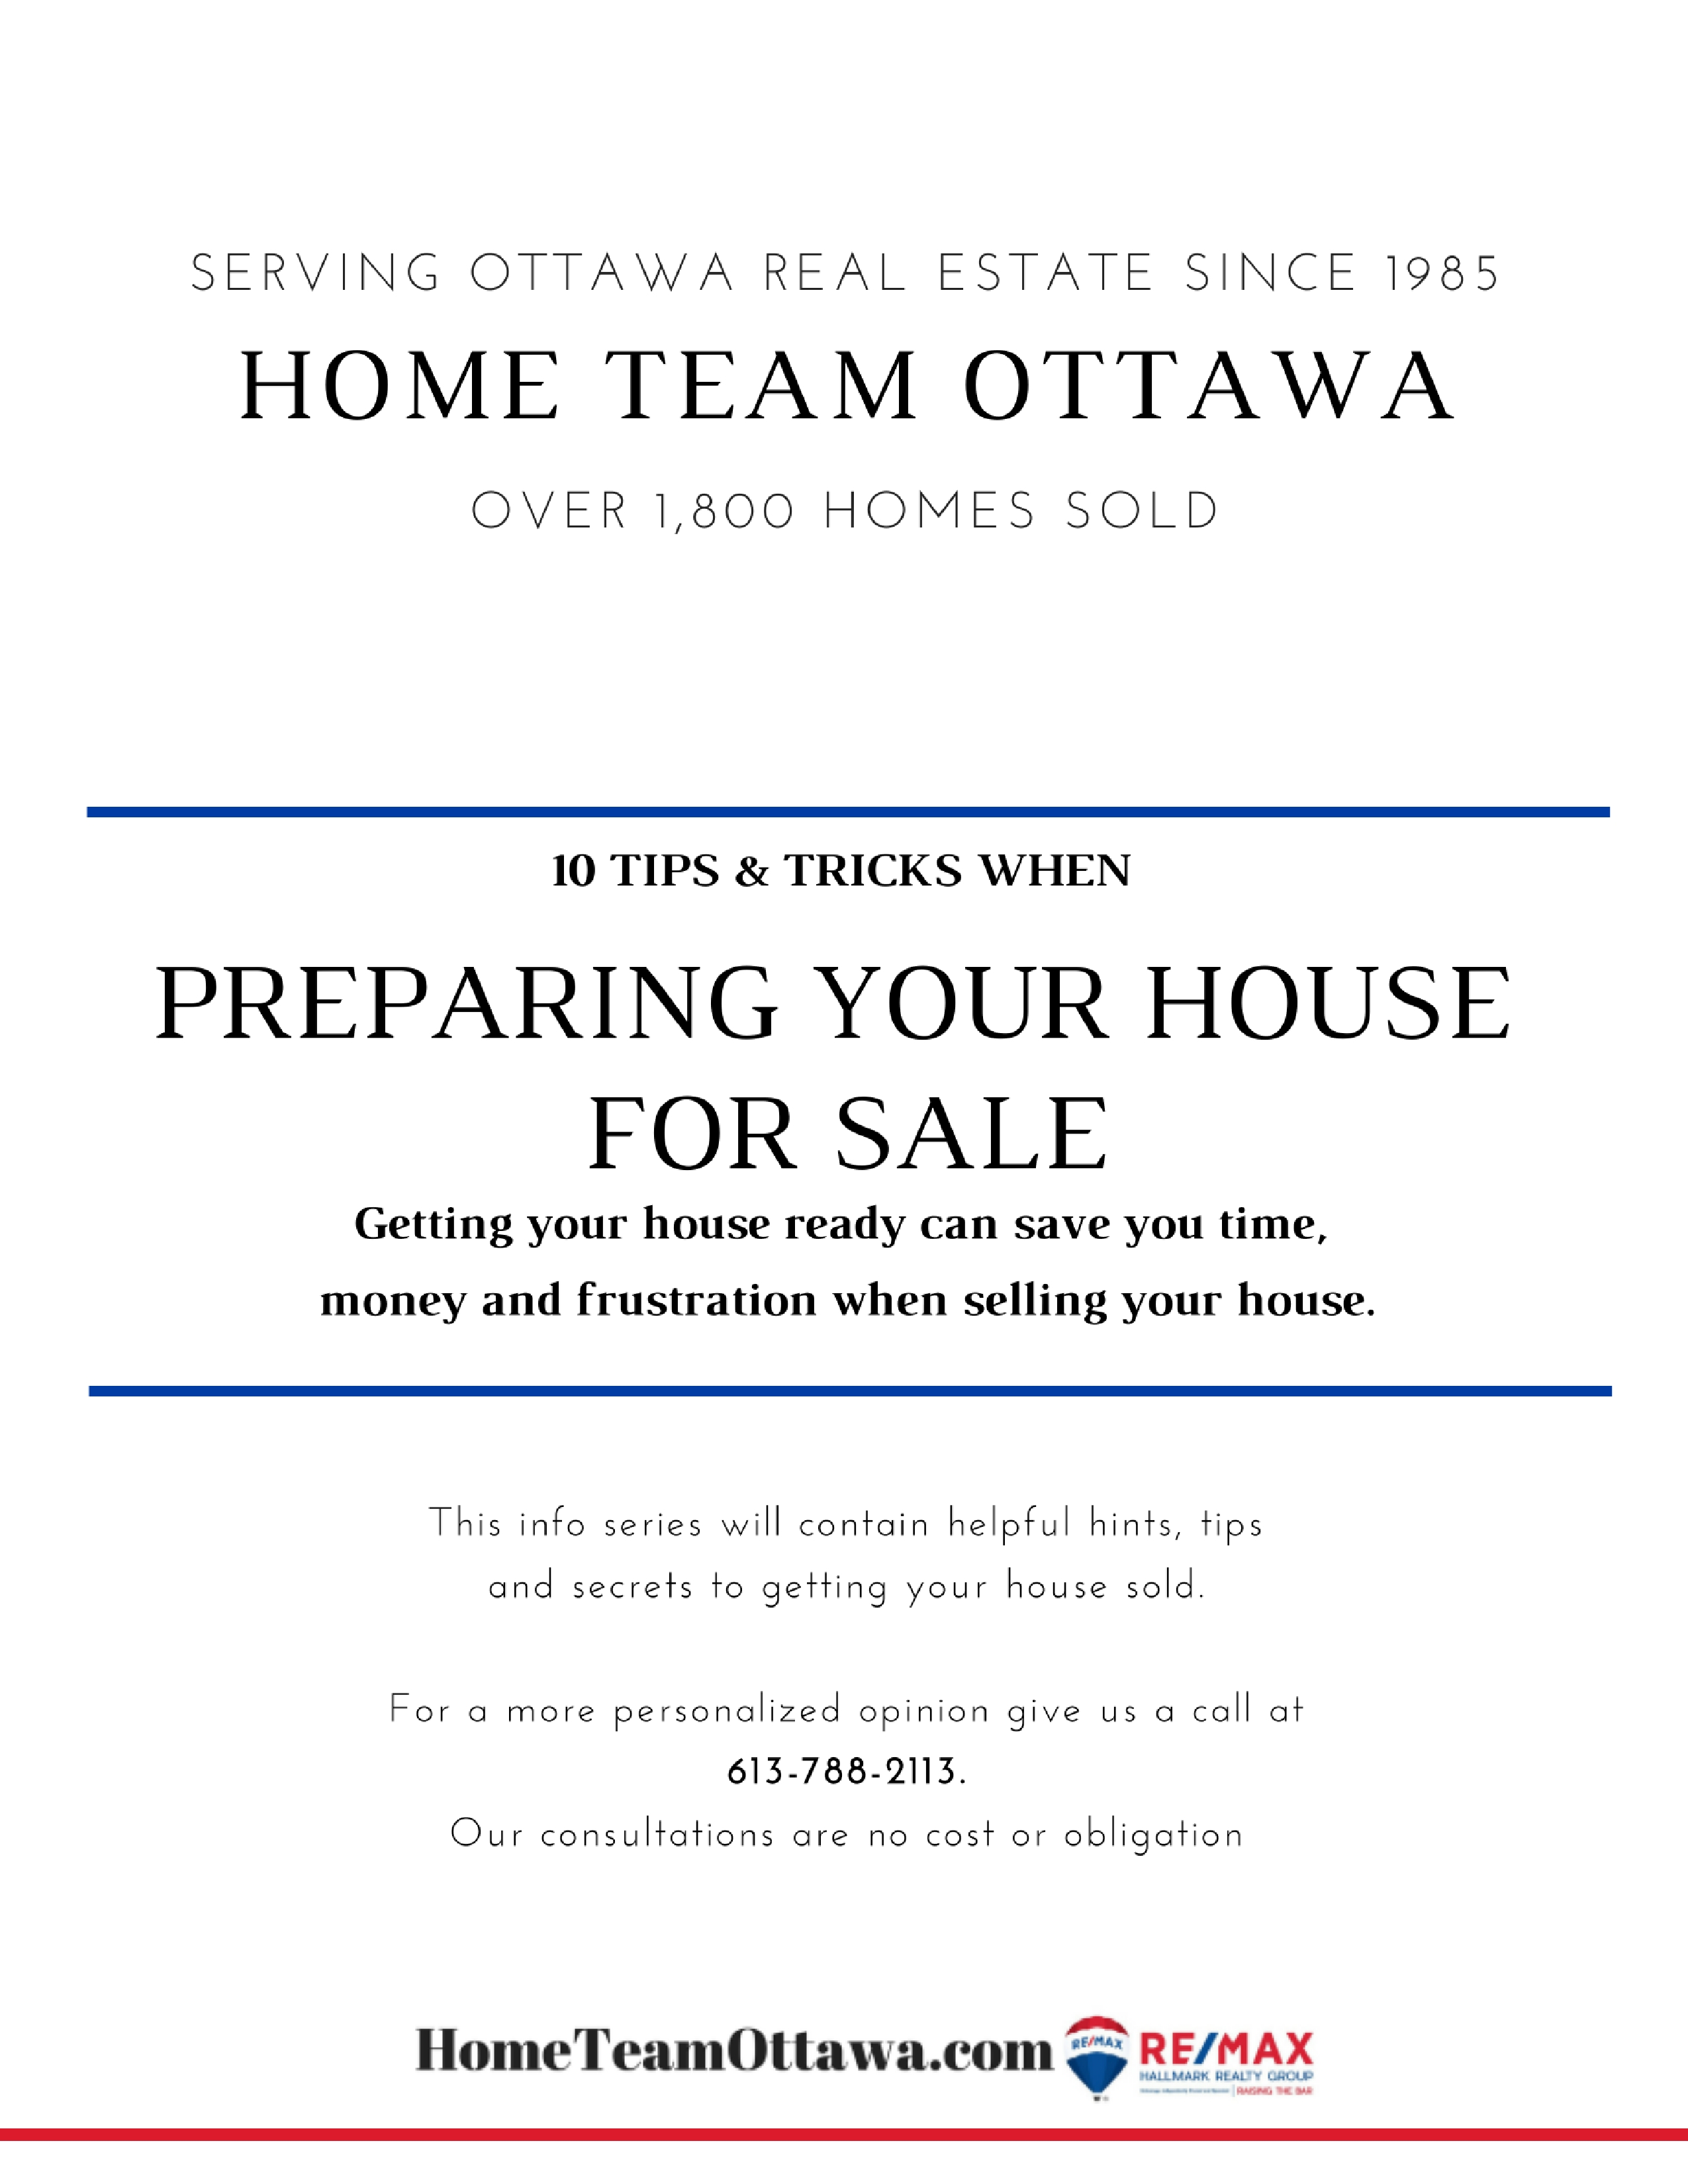 Download your free report: 10 Tips & Tricks when Preparing Your Home for Sale